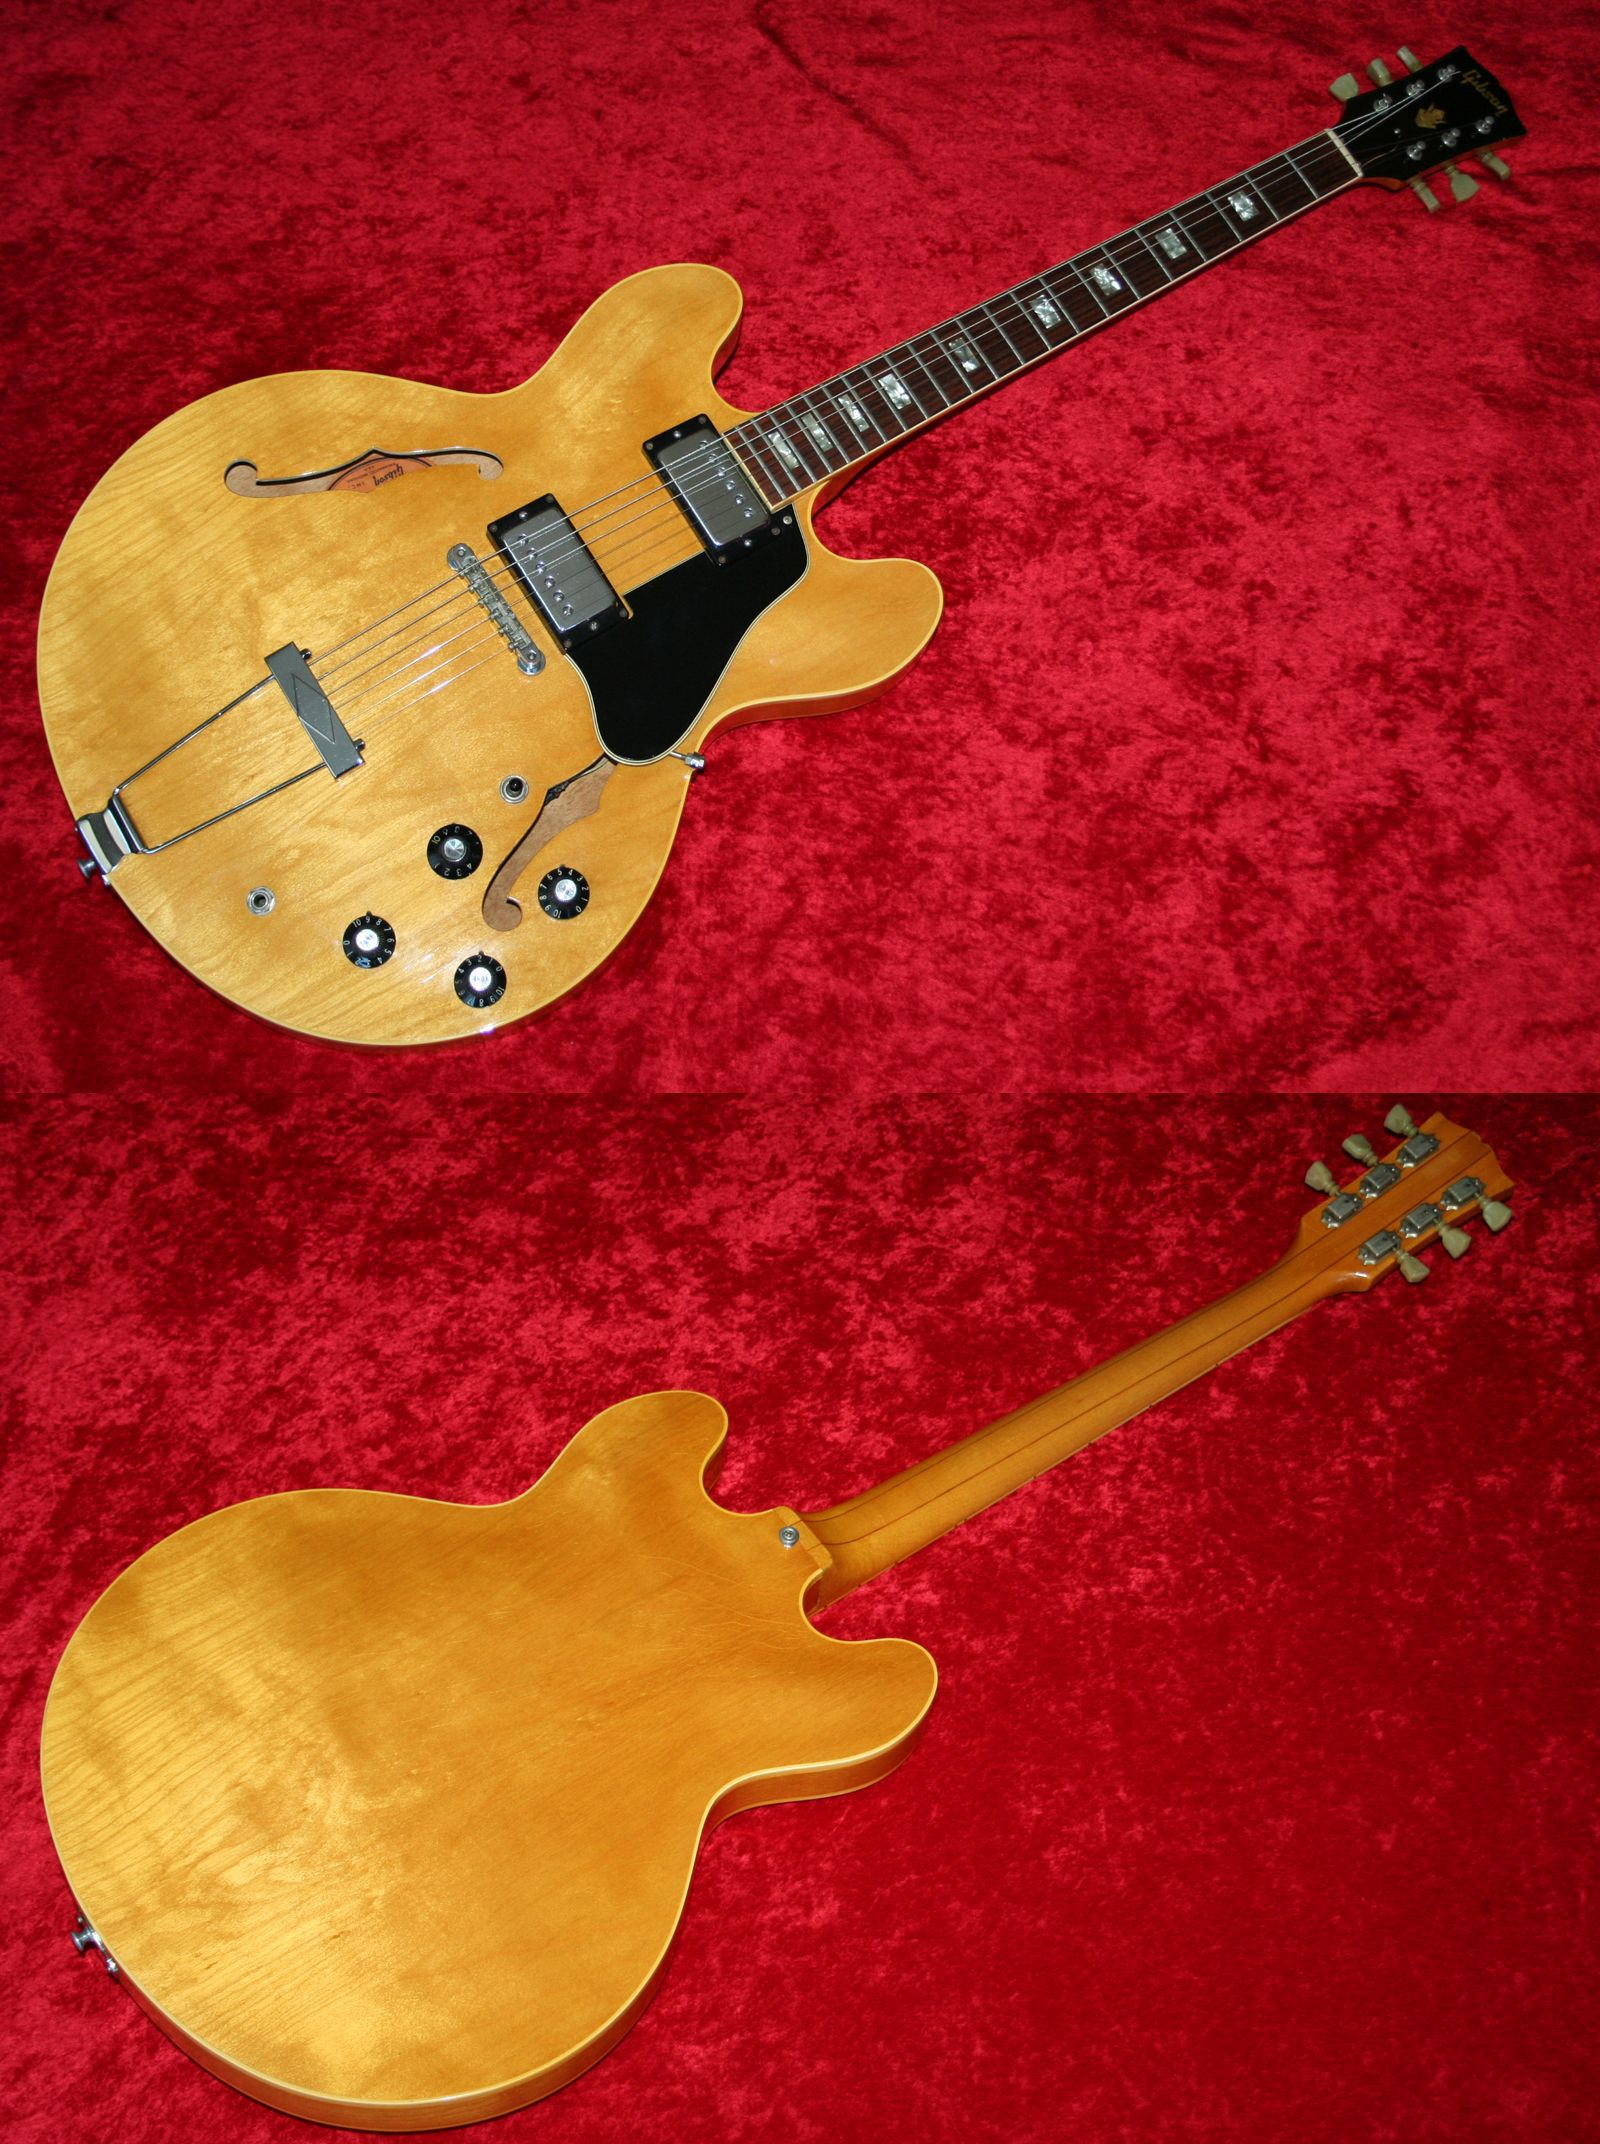 Vintage Es335 Wiring Trusted Schematics Diagram Gibson Kit Es 335 1969 340 Blonde Finish Just Like An With Deluxe